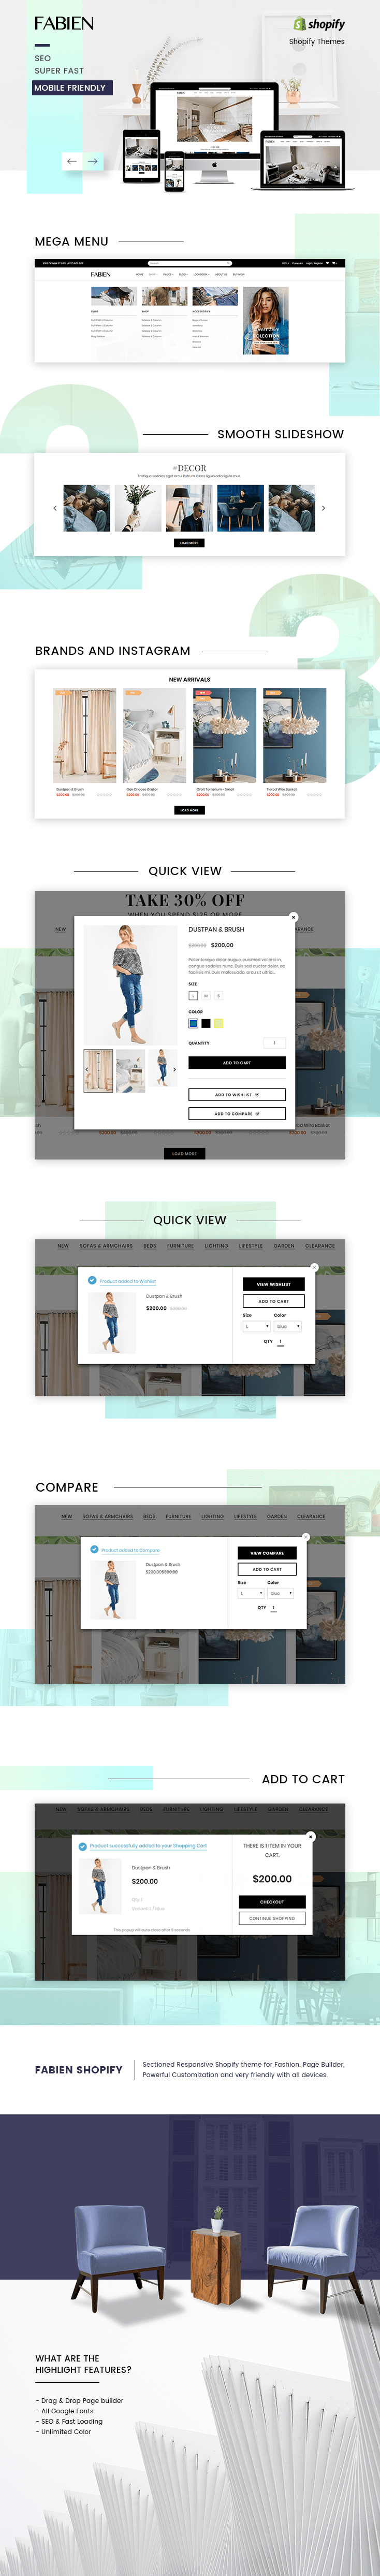 Introduction of Fabien - Shopify theme for Furniture store & decoration